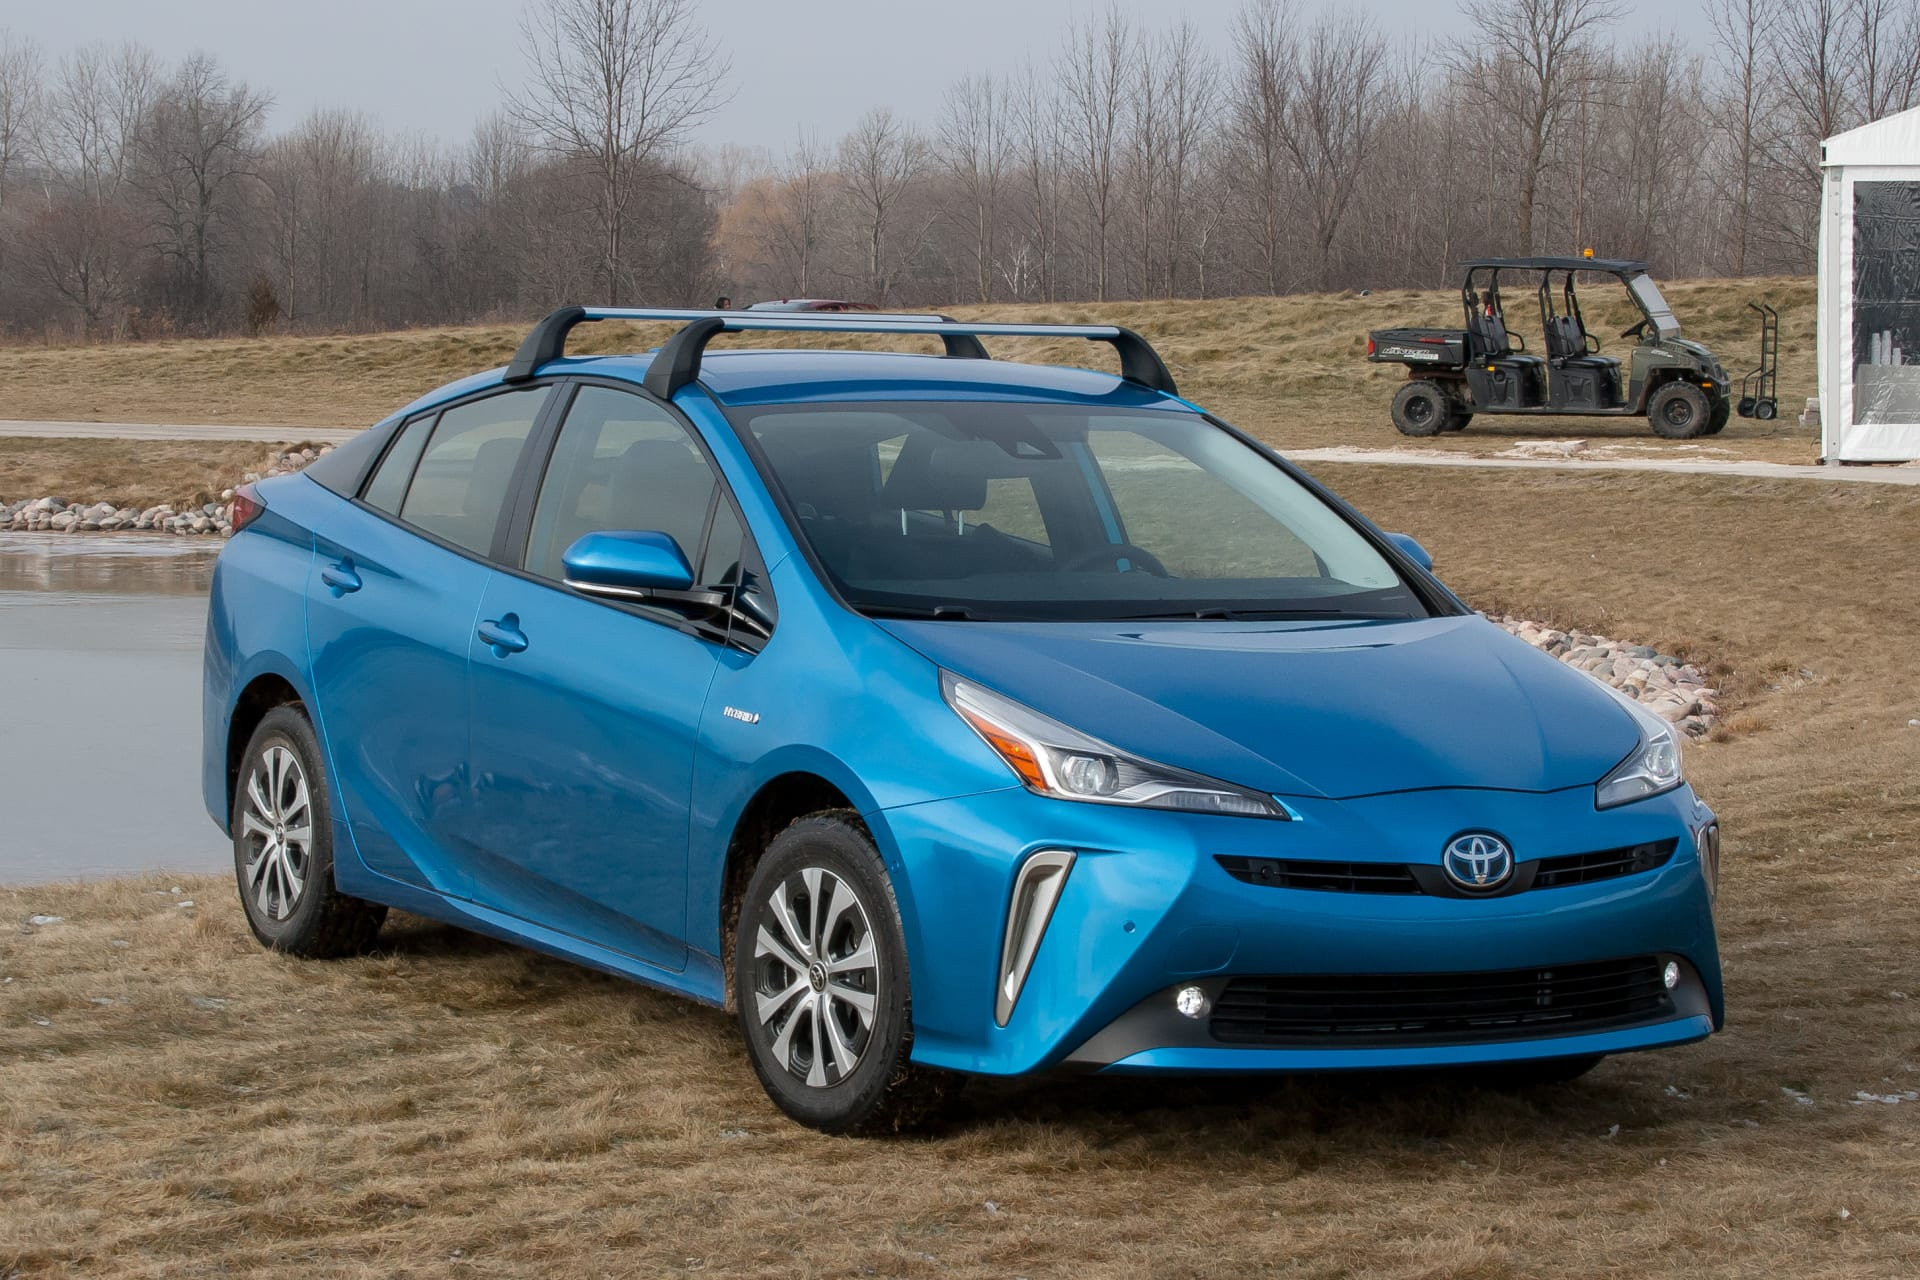 2019 Toyota Prius First Drive: Staggering Efficiency, Now With All